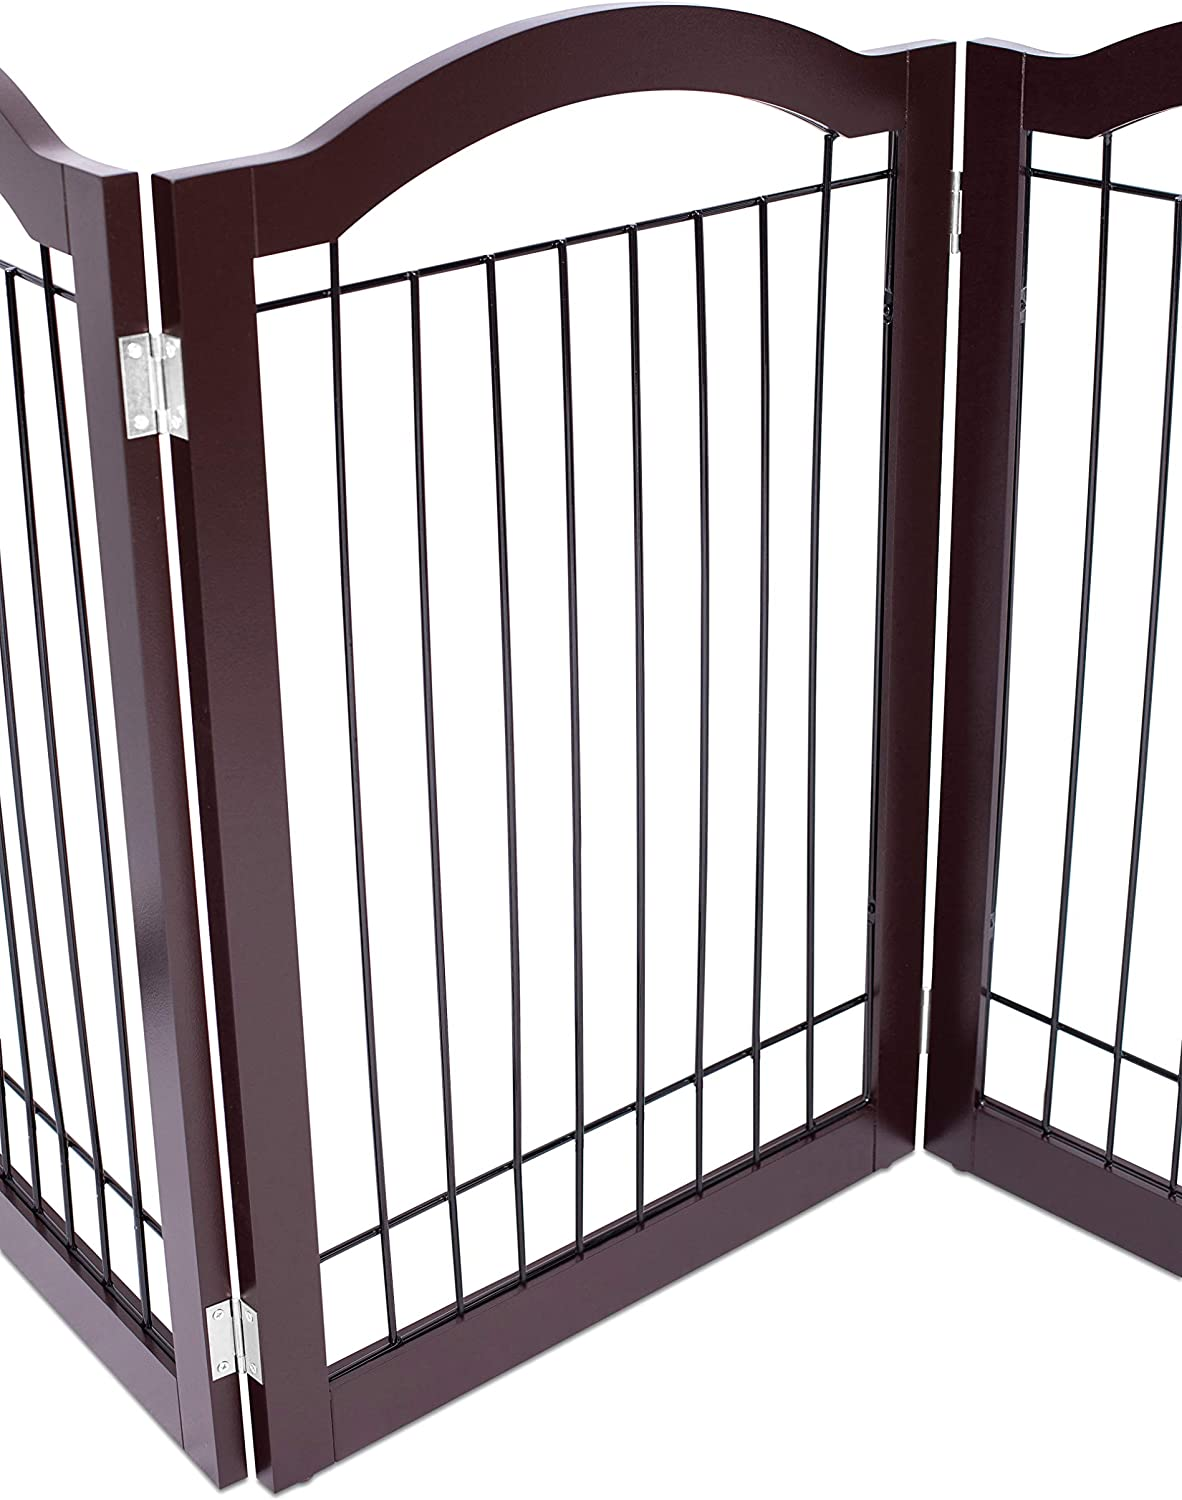 30 Inch Tall Pet Puppy Safety Fence Fully Assembled Internets Best Wire Dog Gate with Arched Top Espresso Durable MDF 3 Panel Folding Z Shape Indoor Doorway Hall Stairs Free Standing